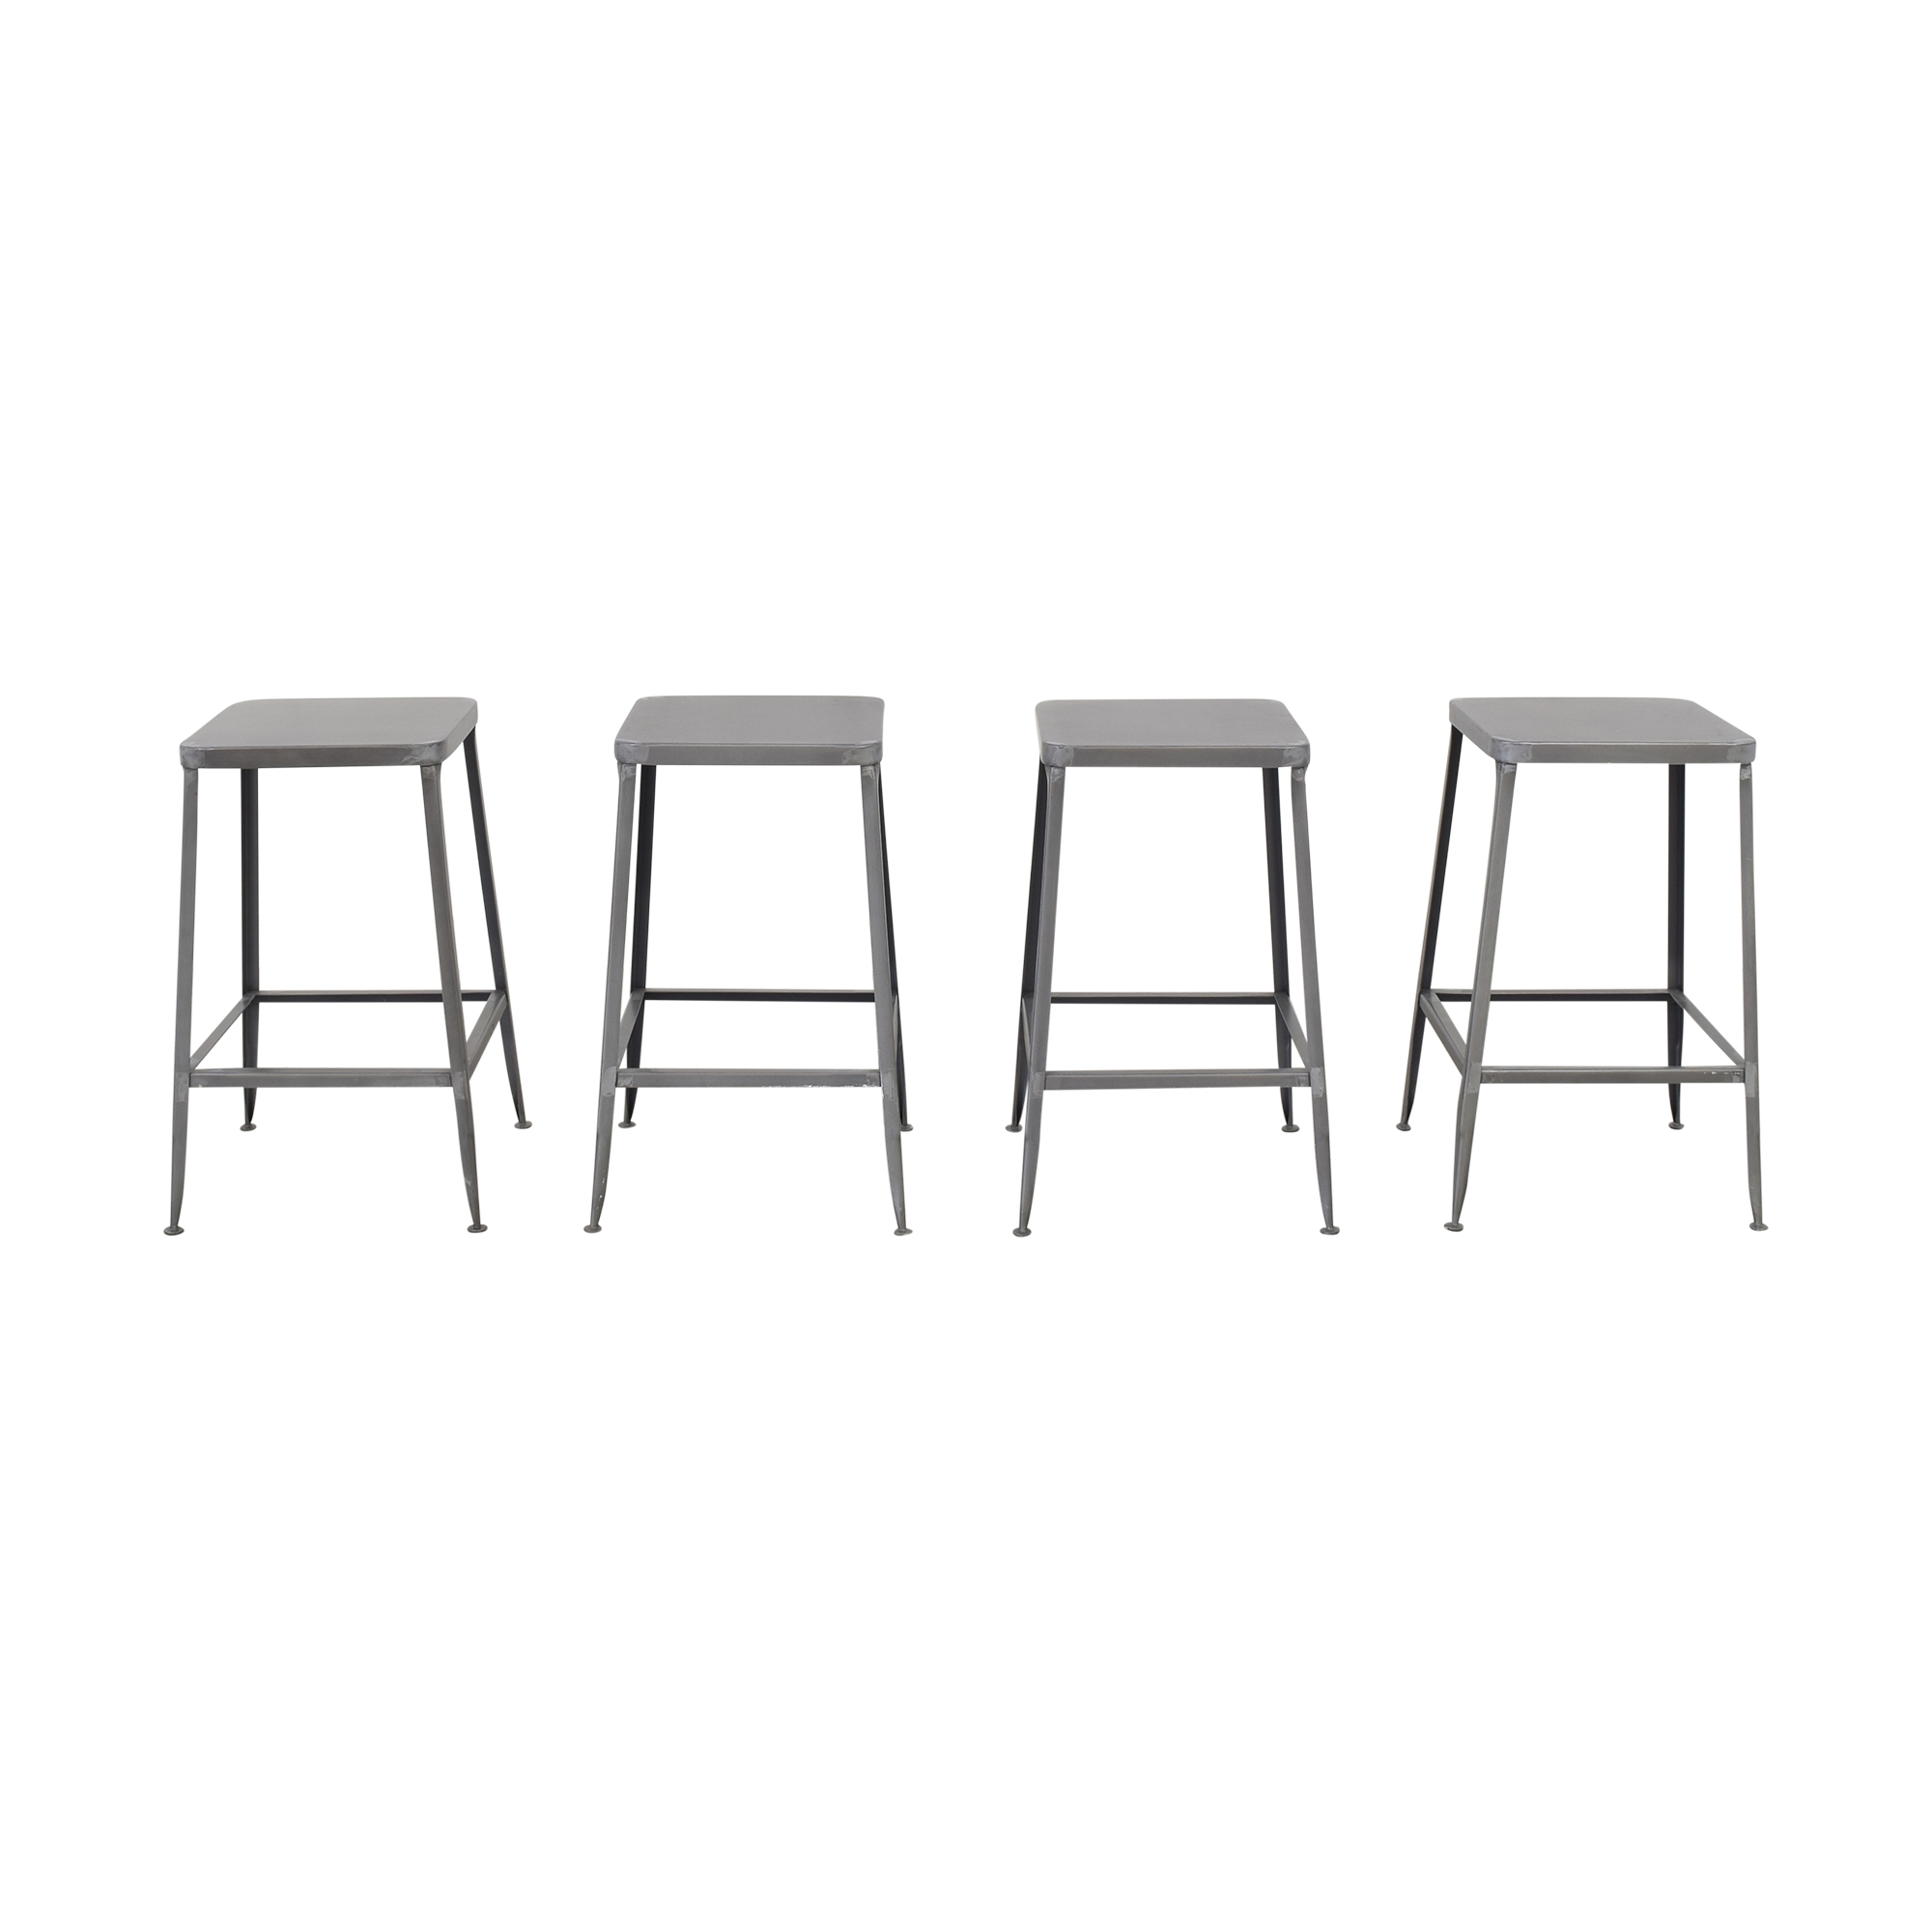 CB2 CB2 Flint Counter Stools second hand